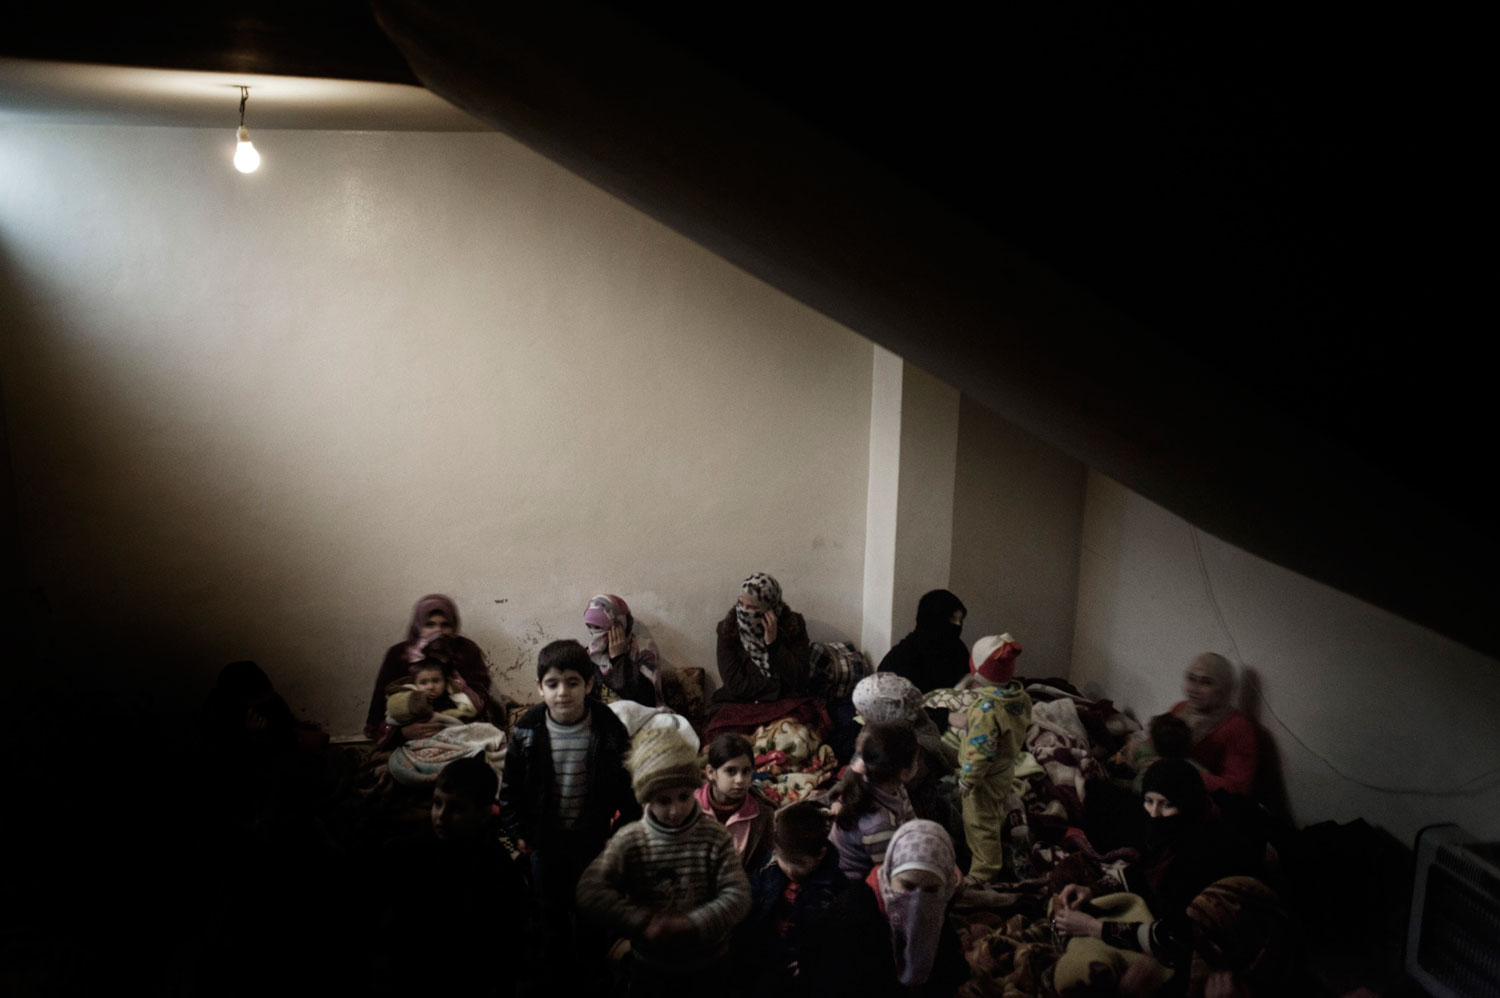 Displaced women and children seek shelter from shelling in a basement in Bab Amr. Feb. 7, 2012